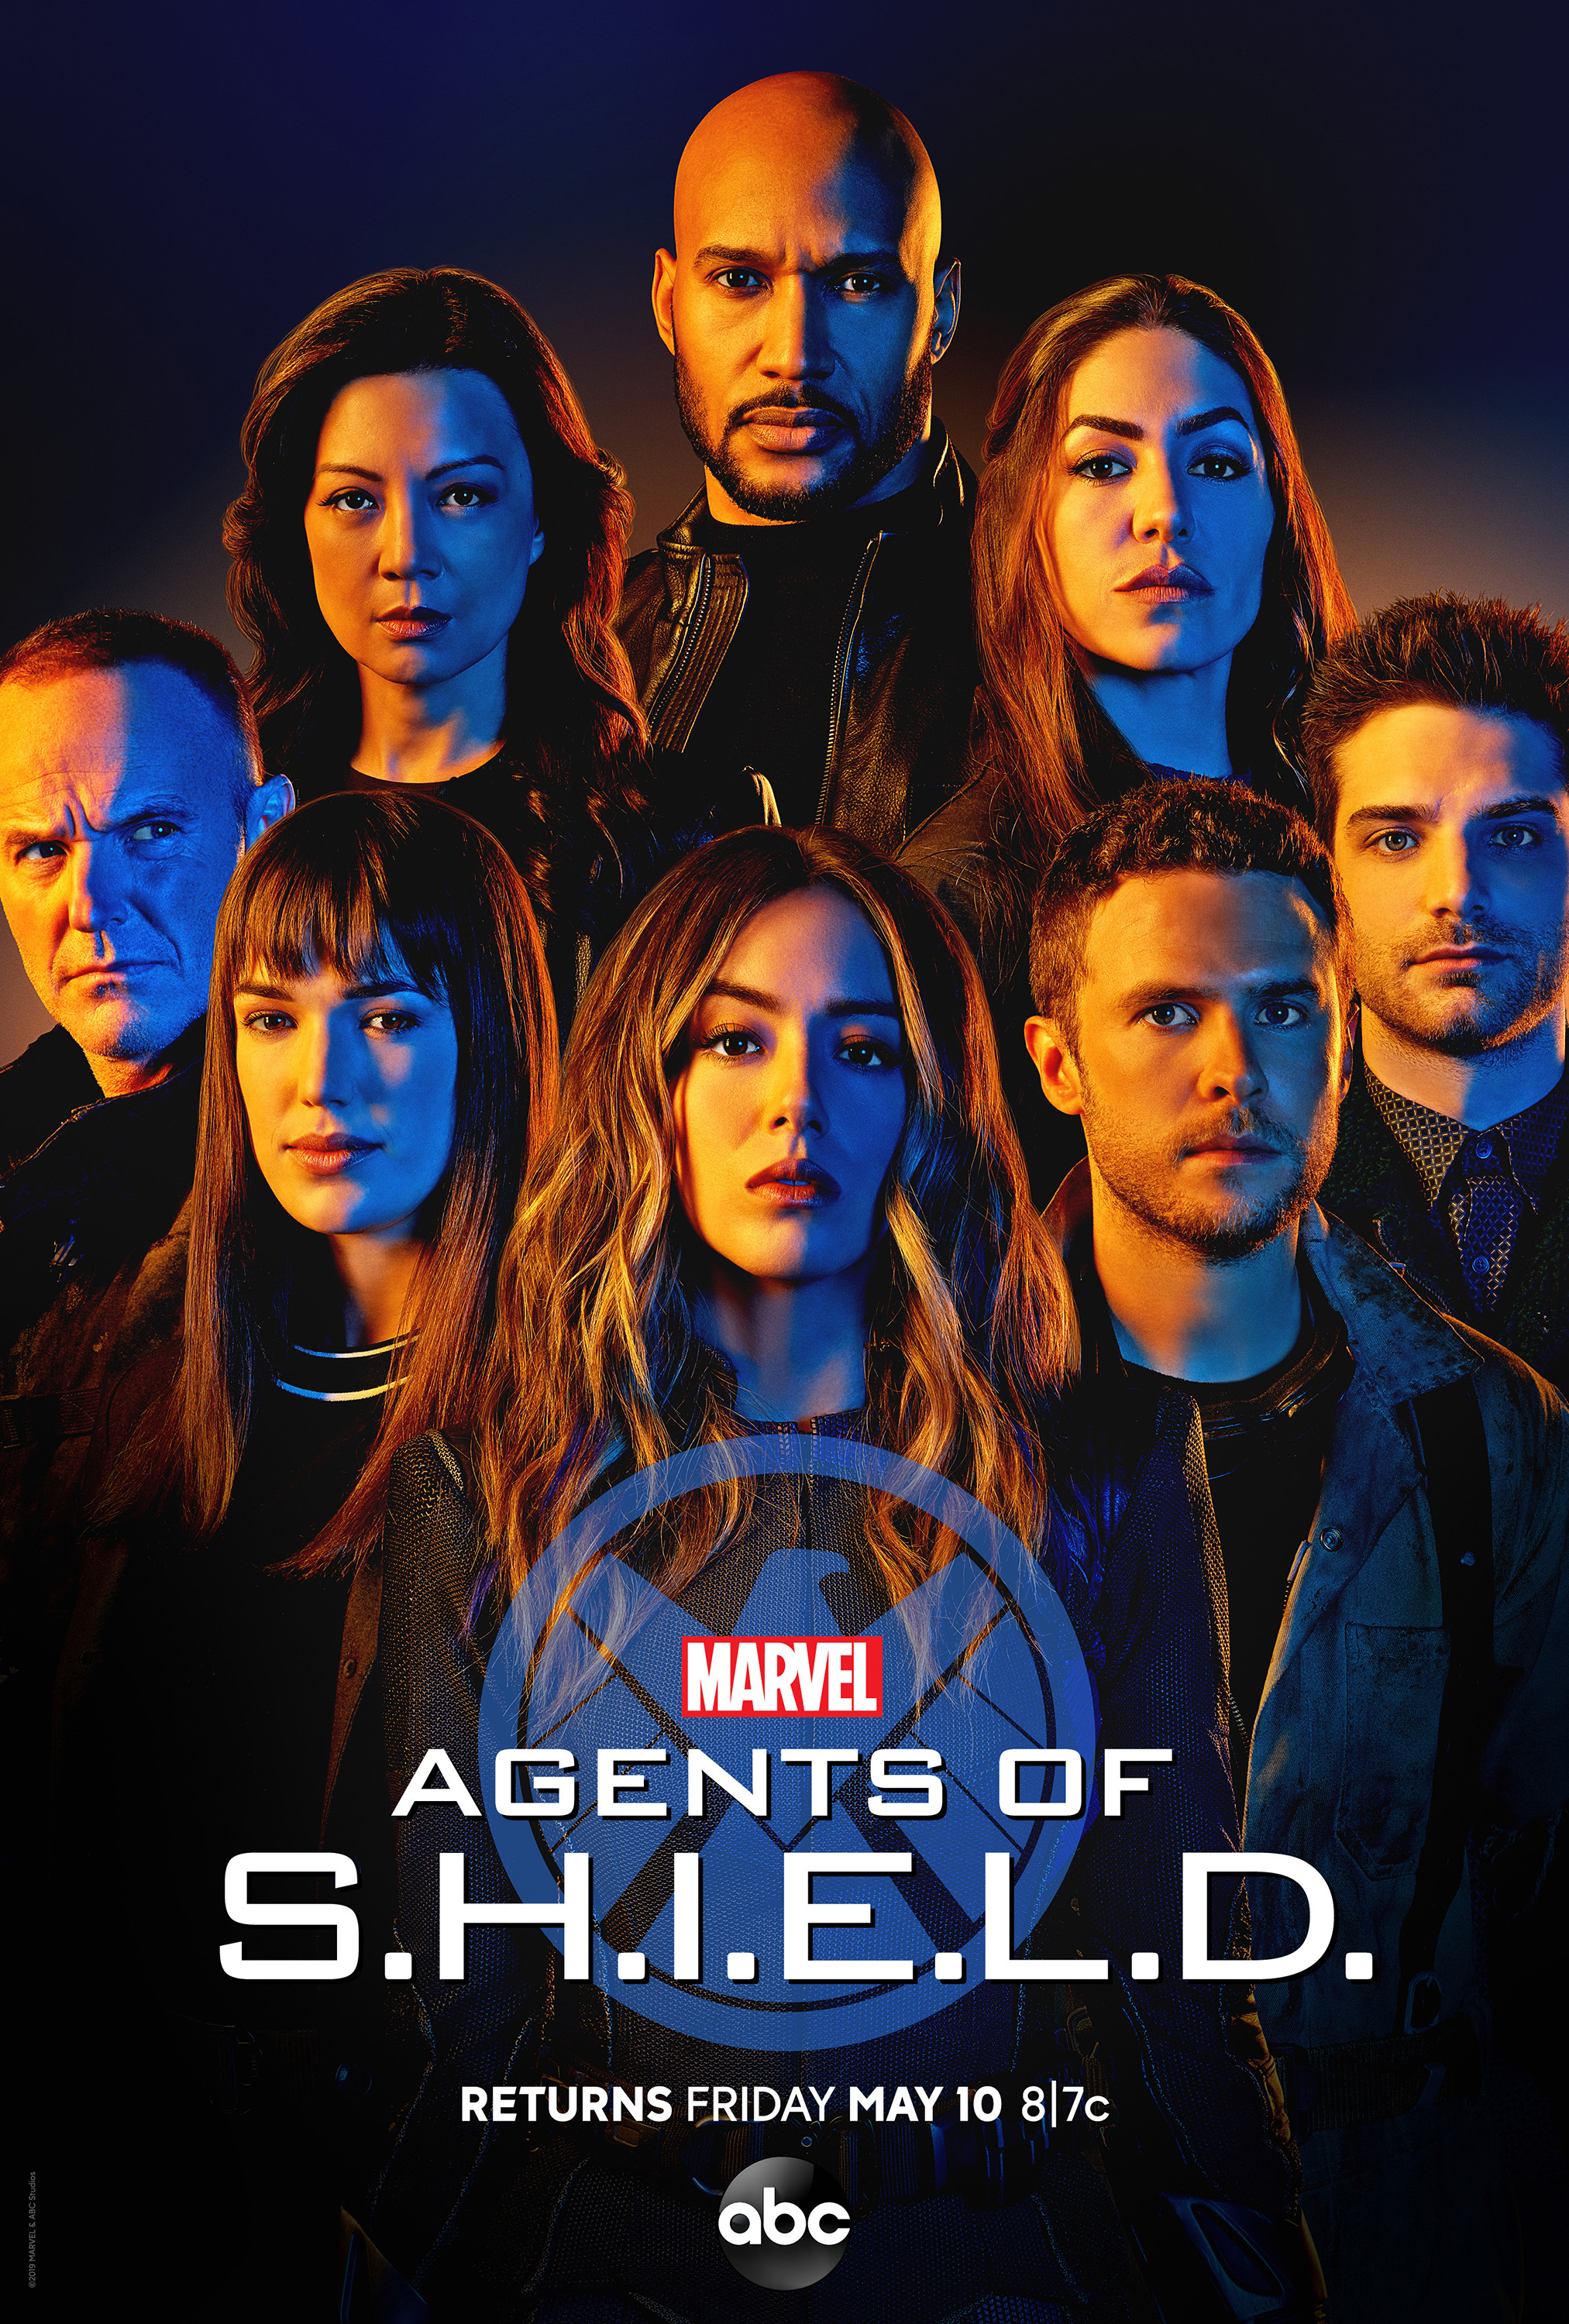 Agents of S.H.I.E.L.D./Season Six | Marvel Cinematic Universe Wiki ...